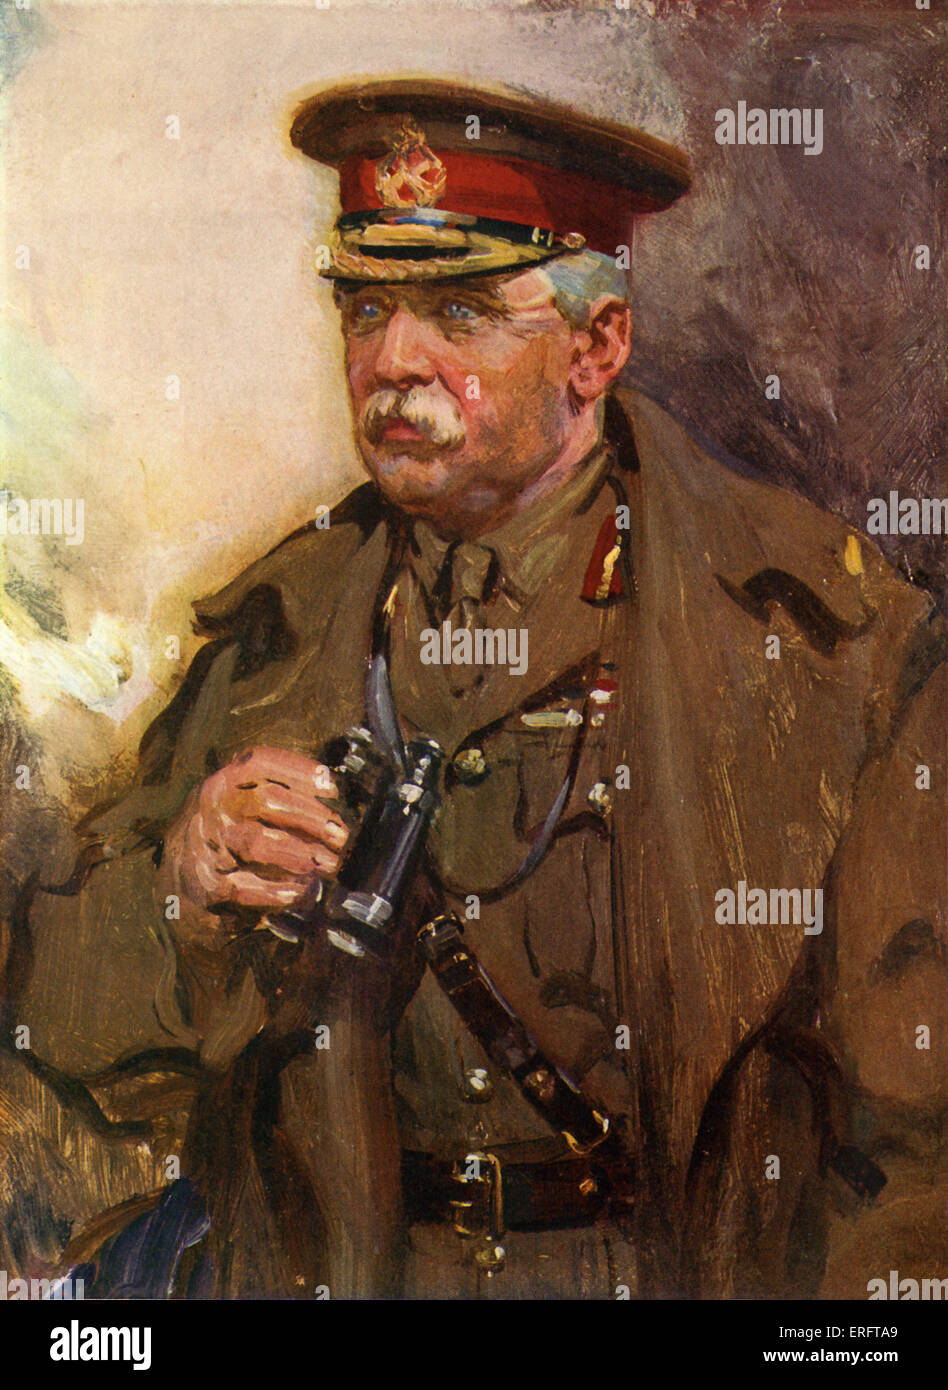 Sir John French - Painting. Field Marshall, British Officer serving as first Commander-in-Chief in British Expeditionary - Stock Image